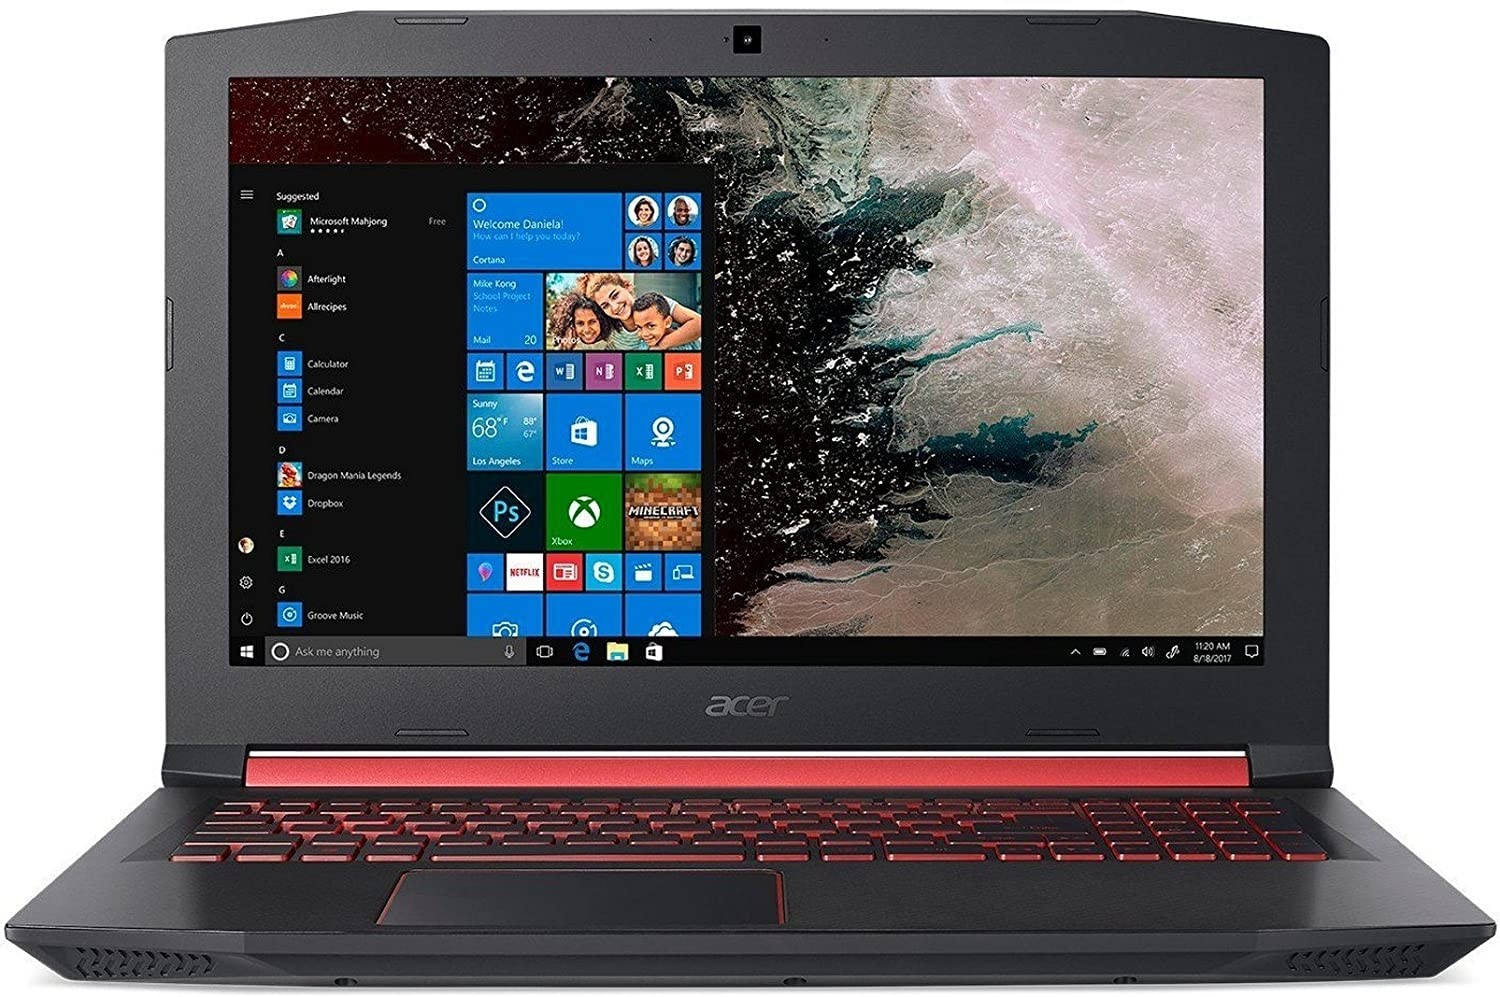 Refurbished laptops & desktops - ACER NITRO 5 AN515-52 15.6-INCH GAMING LAPTOP (8TH GEN INTEL CORE I5-8300H/8GB/1TB + 256GB SSD/WINDOWS 10 HOME 64-BIT/4GB NVIDIA GEFORCE GTX 1050TI GRAPHICS), SHALE BLACK